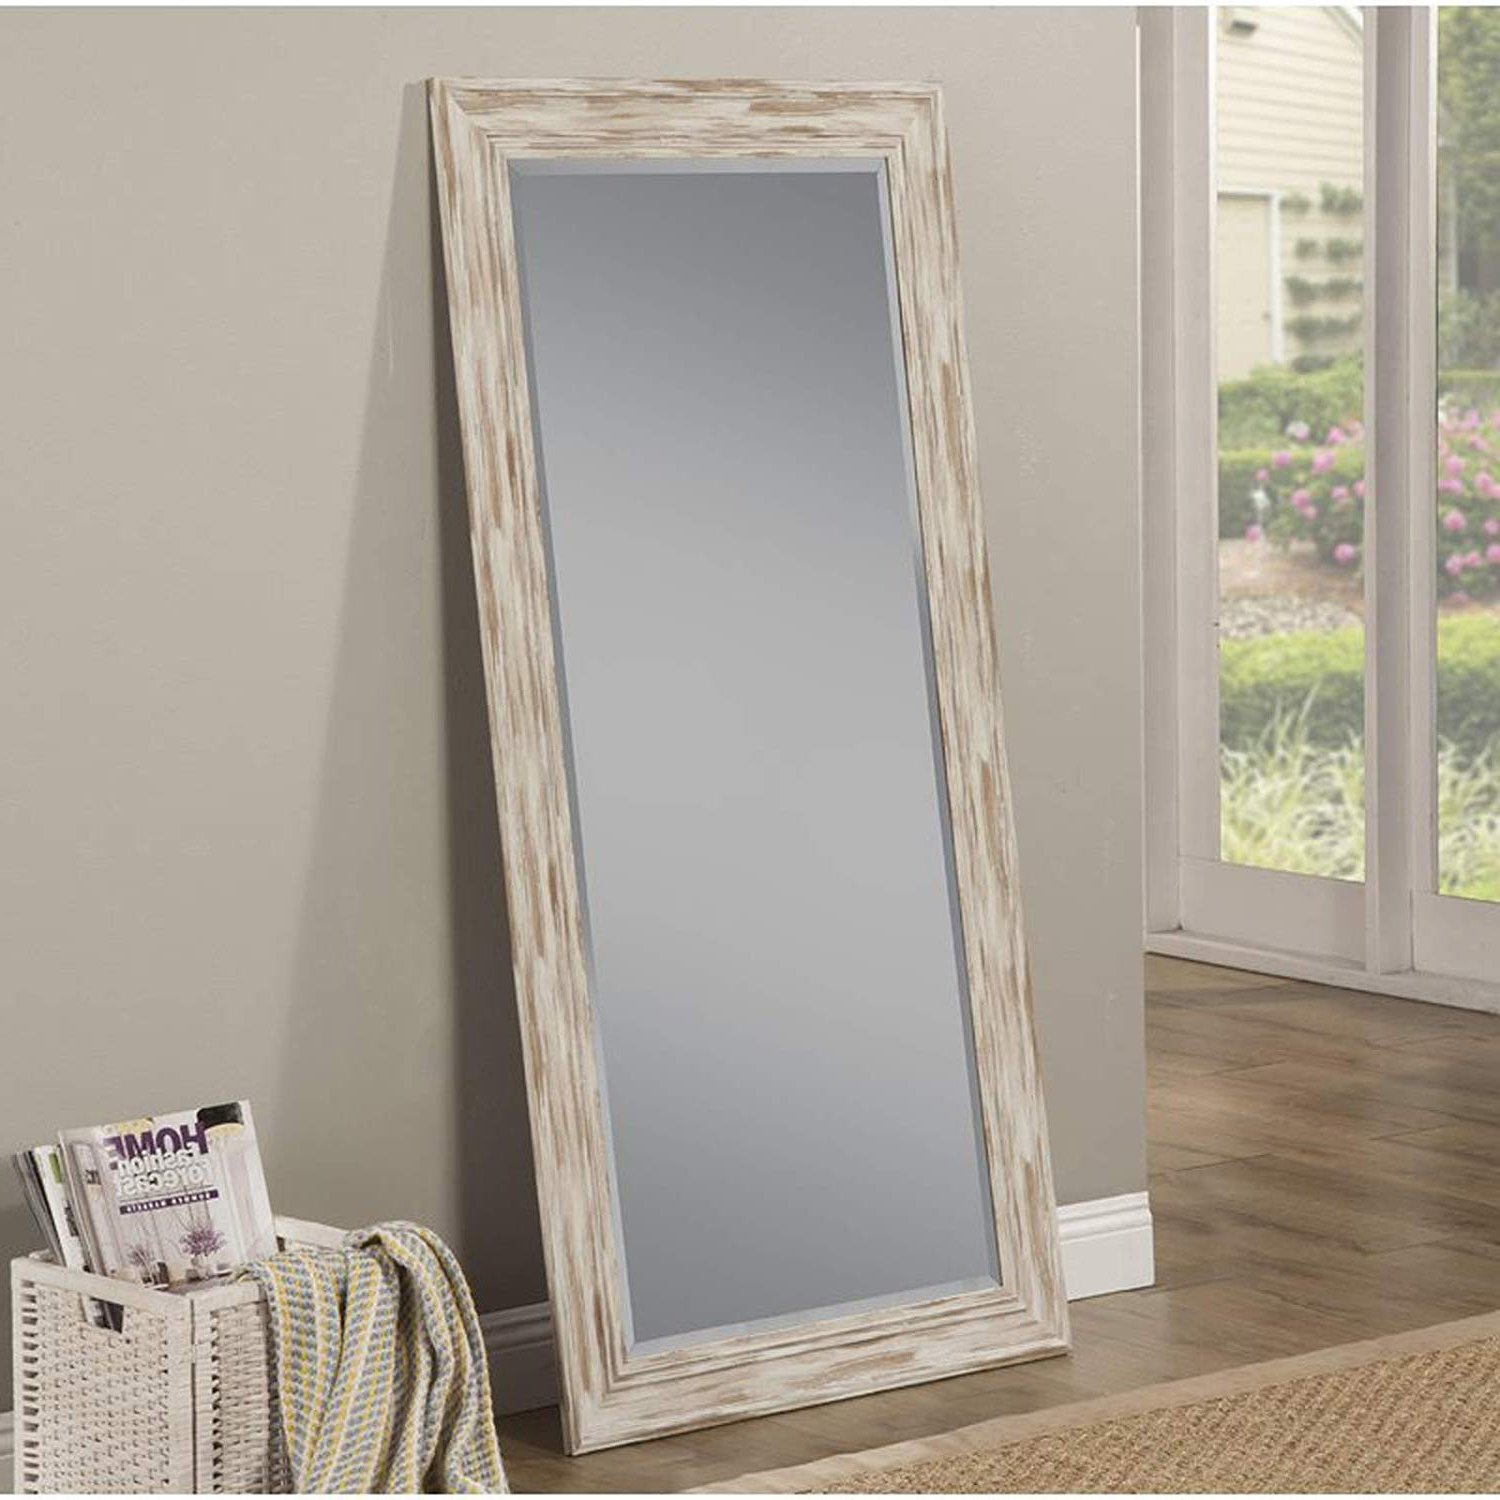 Antique Full Length Wall Mirrors Throughout 2019 Full Length Wall Mirror – Rustic Rectangular Shape Horizontal & Vertical Mirror – Can Be Use In Living Room, Bedroom, Entryway Or Bathroom (antique (View 5 of 20)